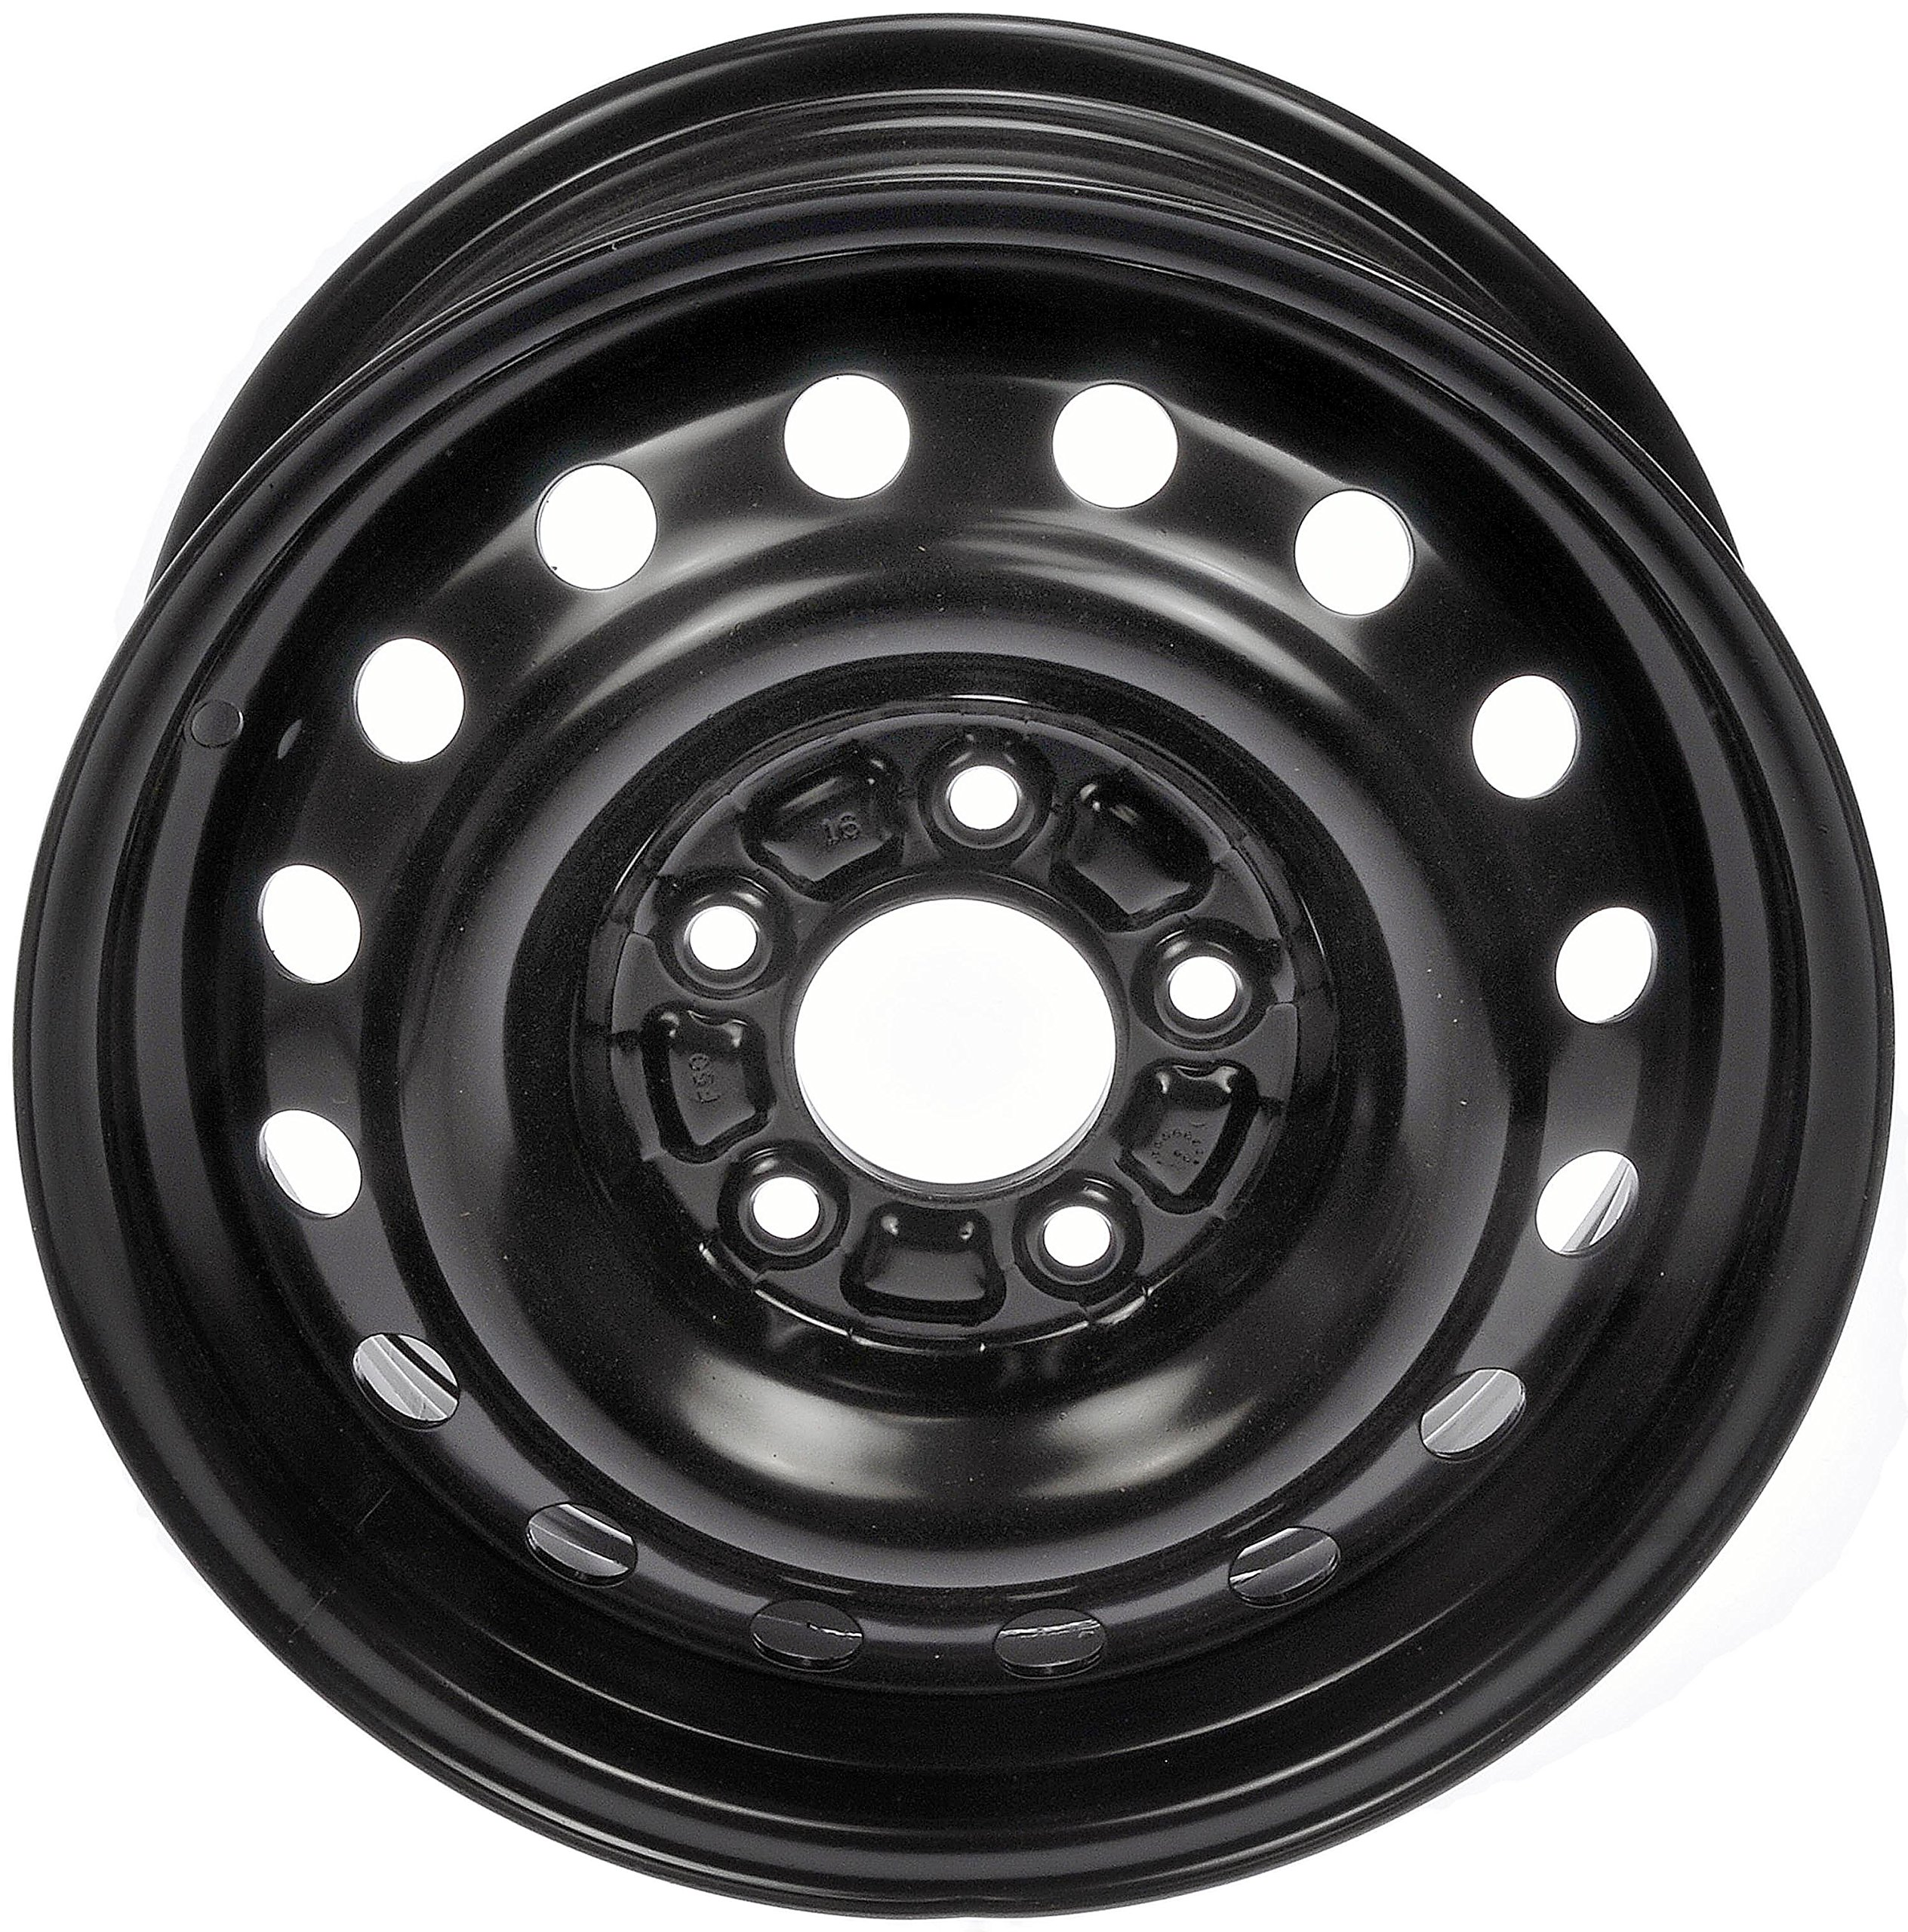 Dorman 939-165 Black Wheel with Painted Finish (15 x 6.5 inches /5 x 114 mm, 39 mm Offset)